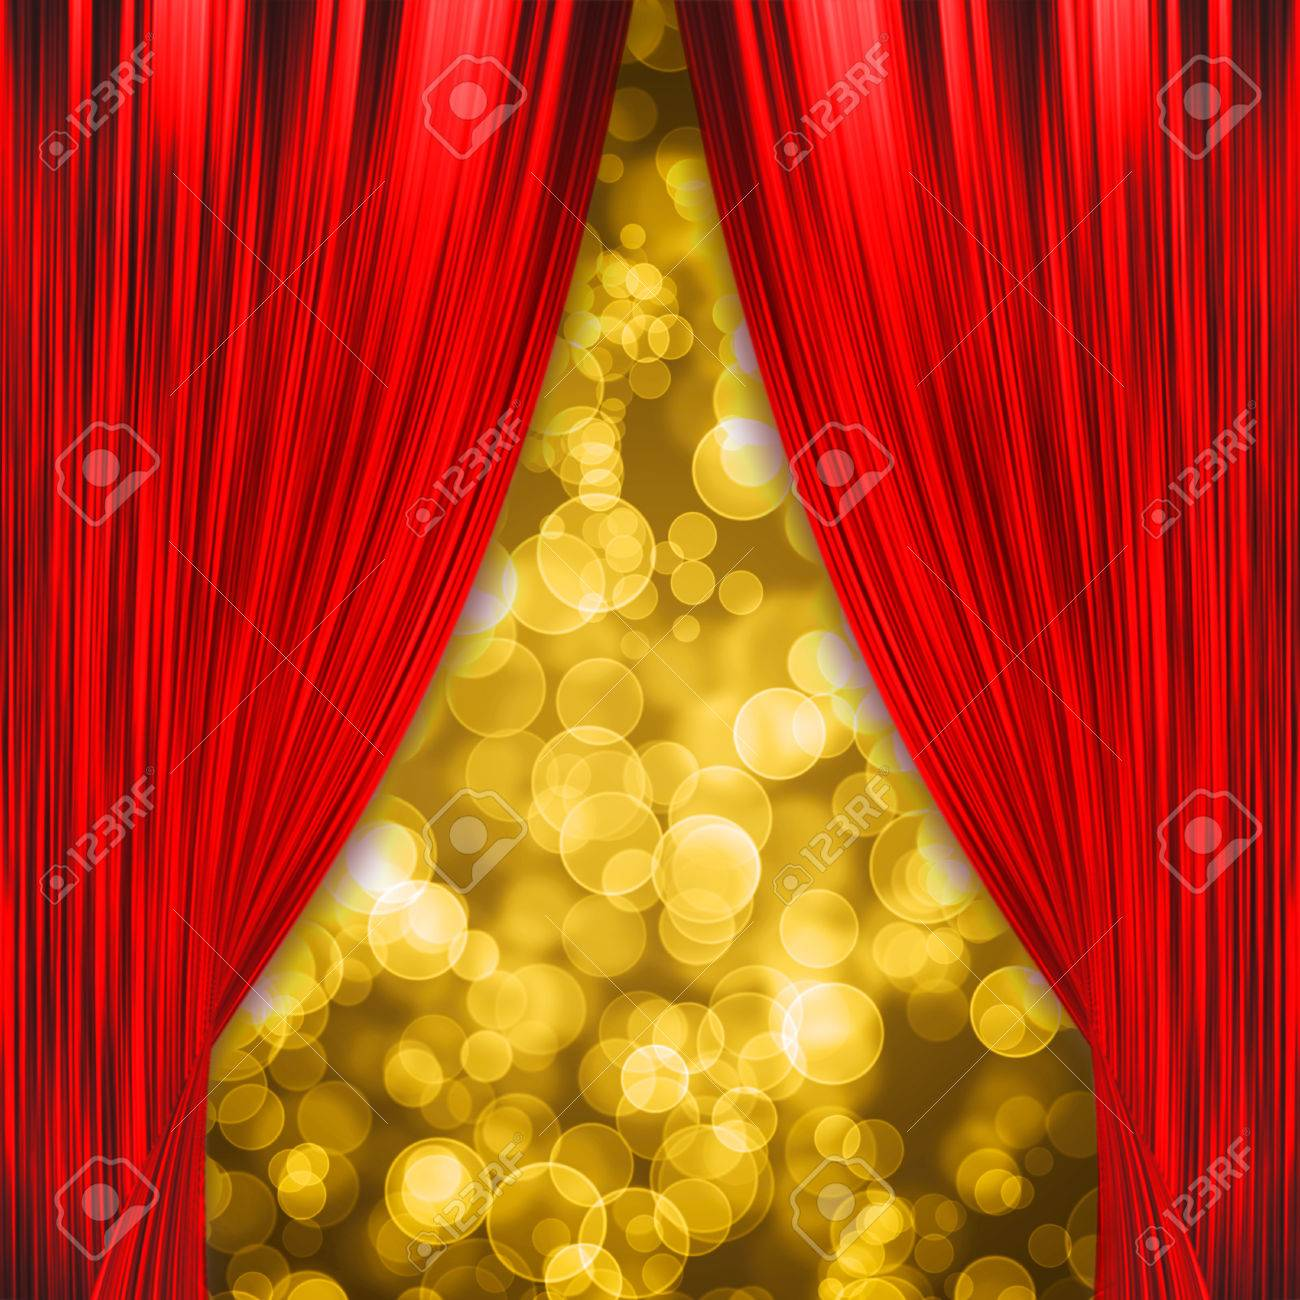 8b9832a94 Two Red Curtains Opening With Glowing Golden Bokeh Stock Photo ...